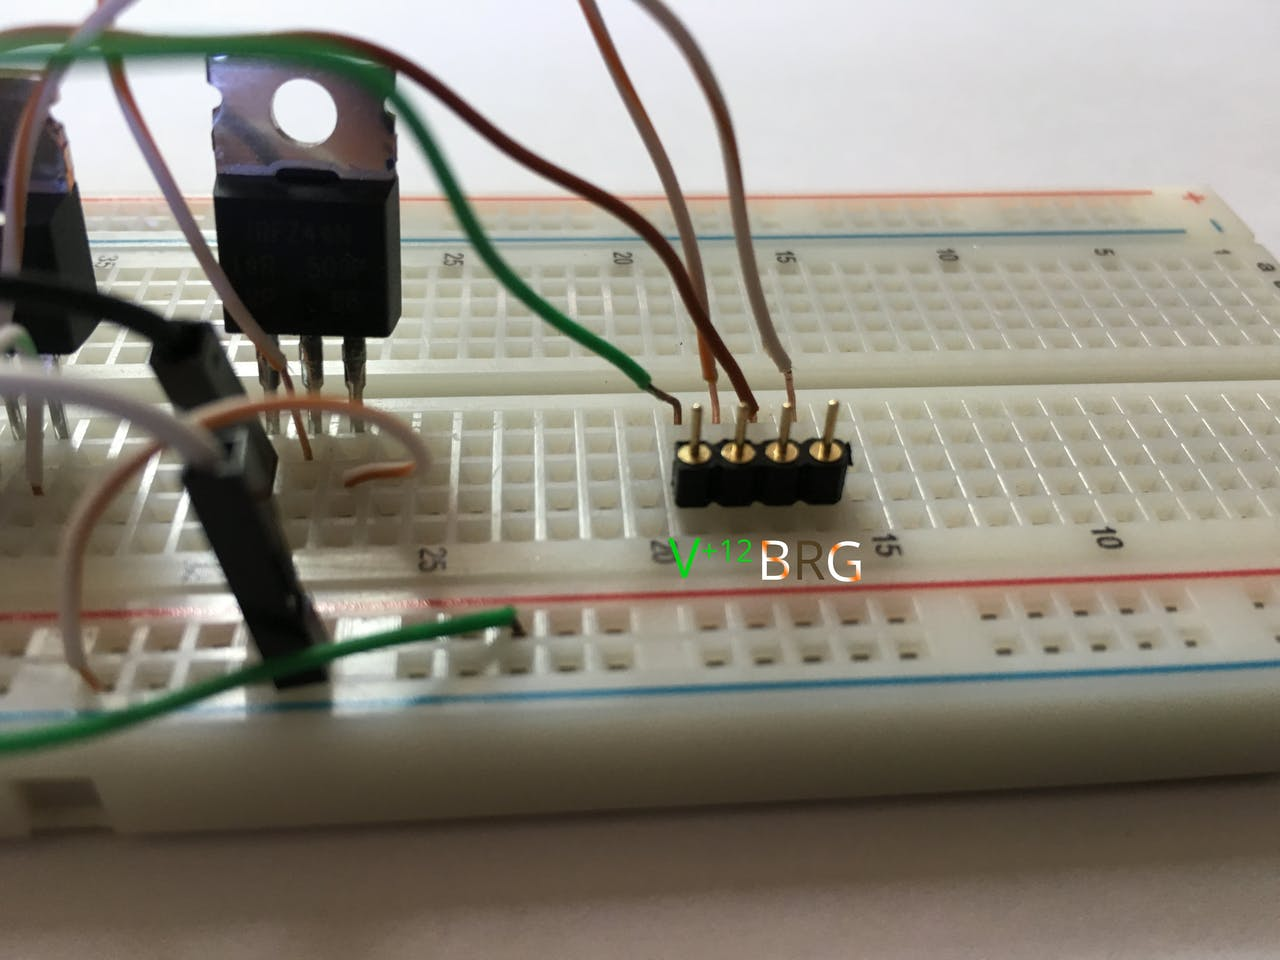 Codename Rgb Mosfet Led Pwm Driver Pcb With Components Soldered In Circuit